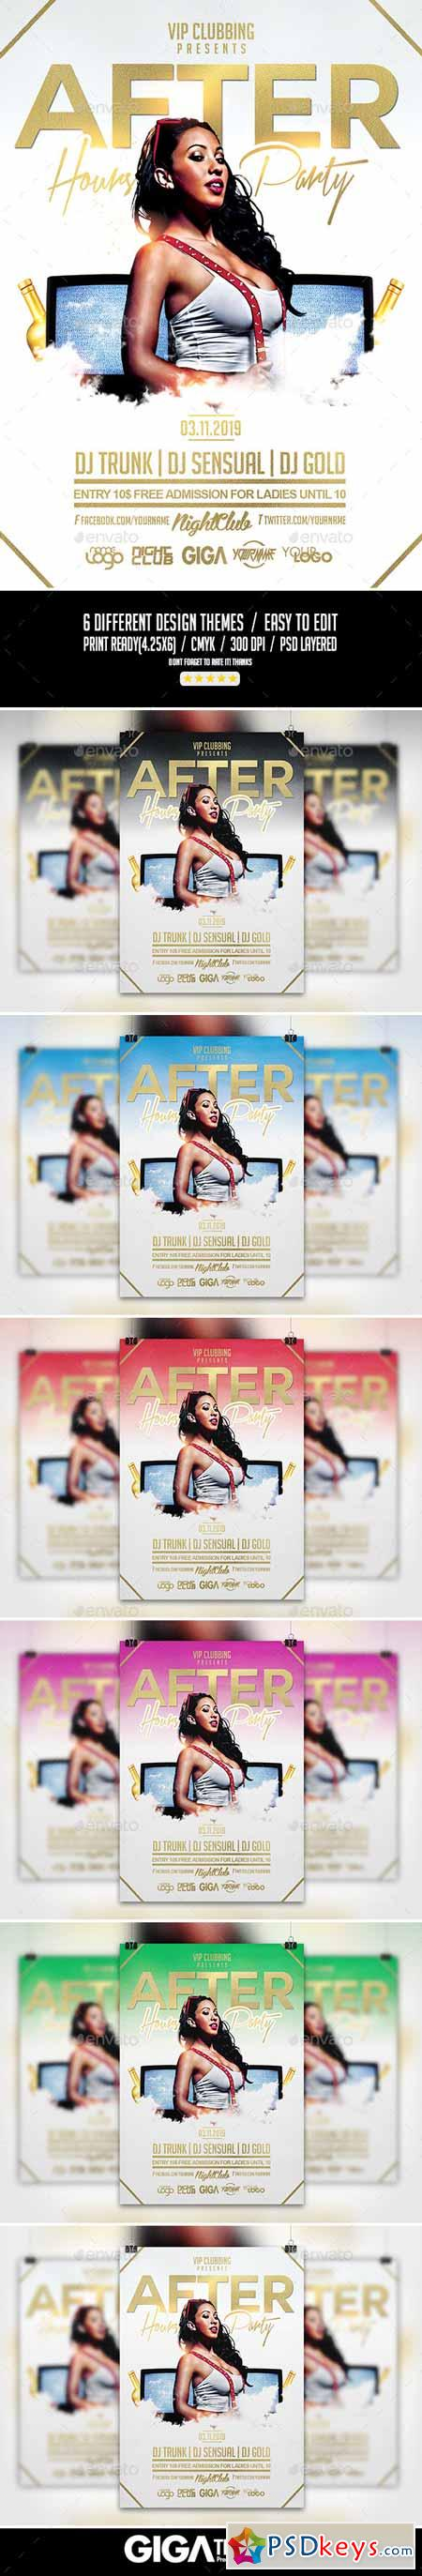 After Hours Party Night Flyer PSD Template 10523374